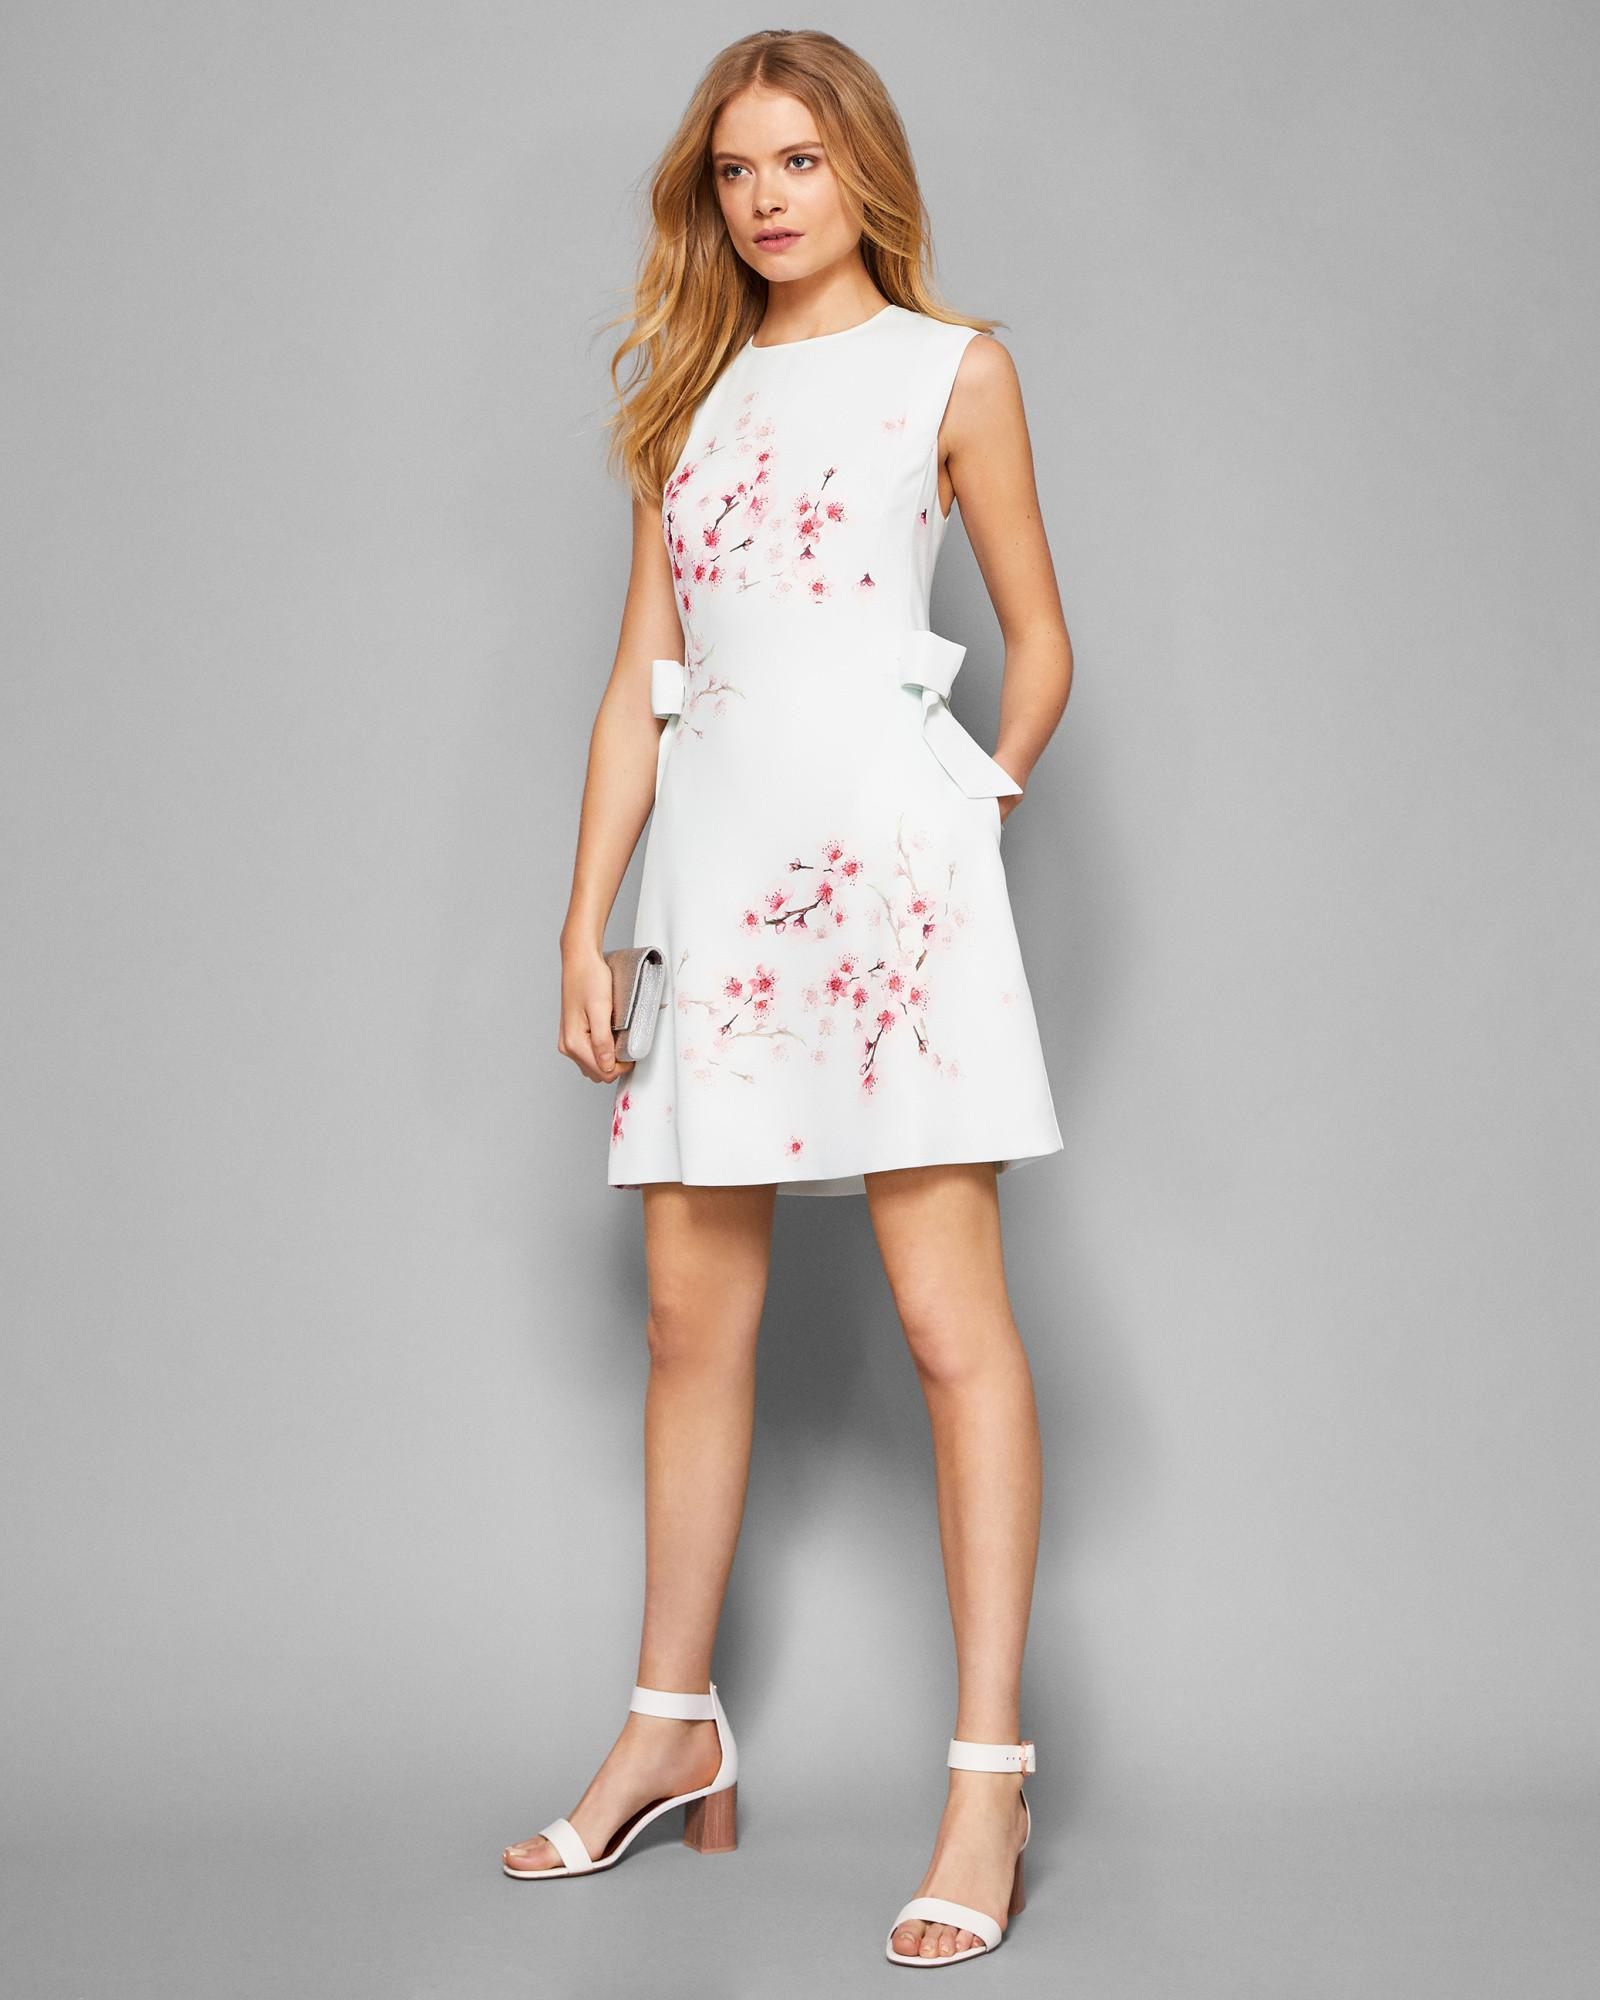 2625f2b63e3dc3 Ted Baker Soft Blossom Bow Detail Dress in White - Lyst